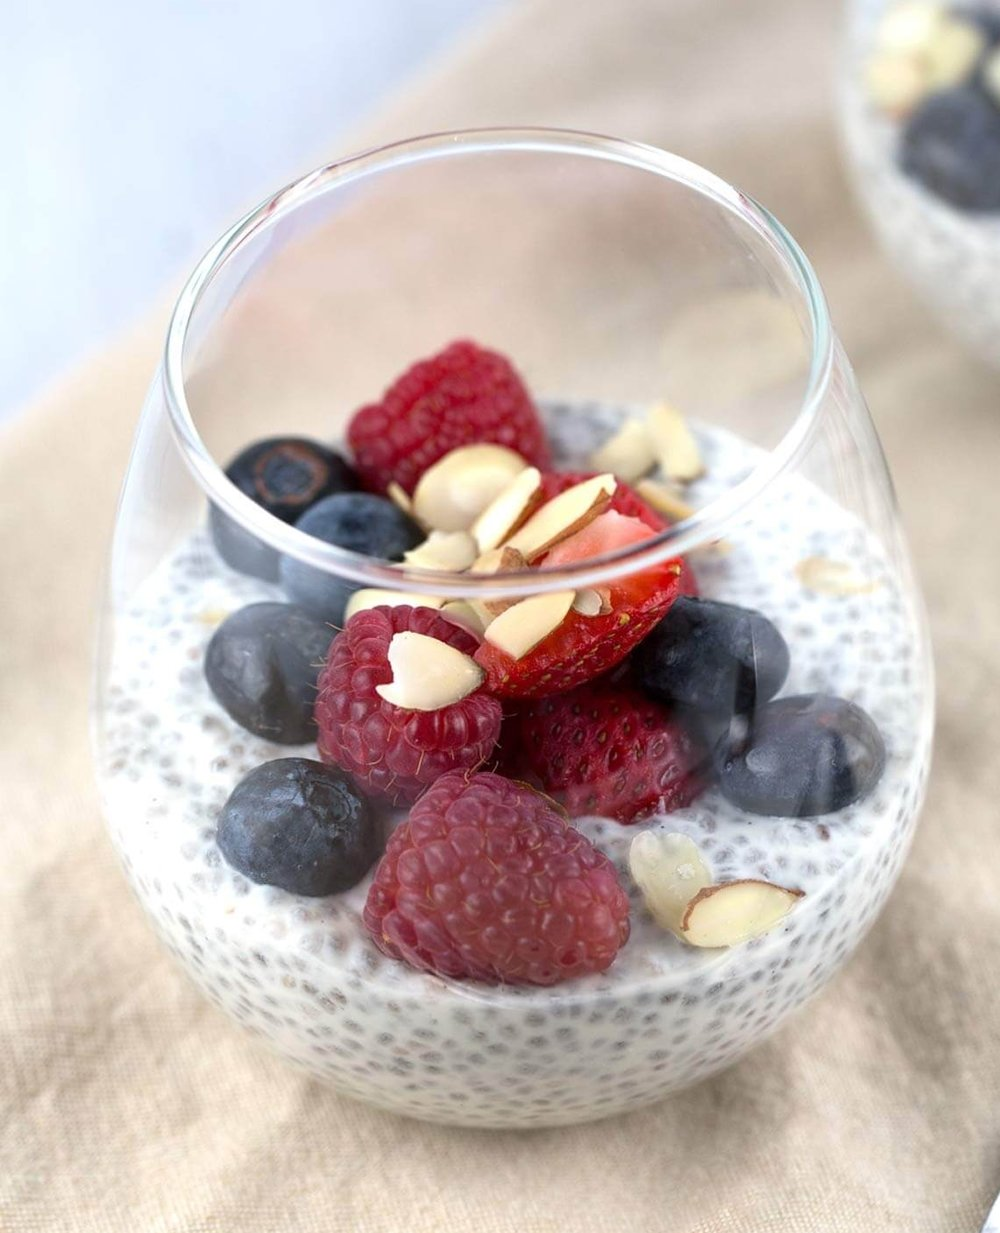 chia-seed-pudding-with-berries-and-almonds.jpg